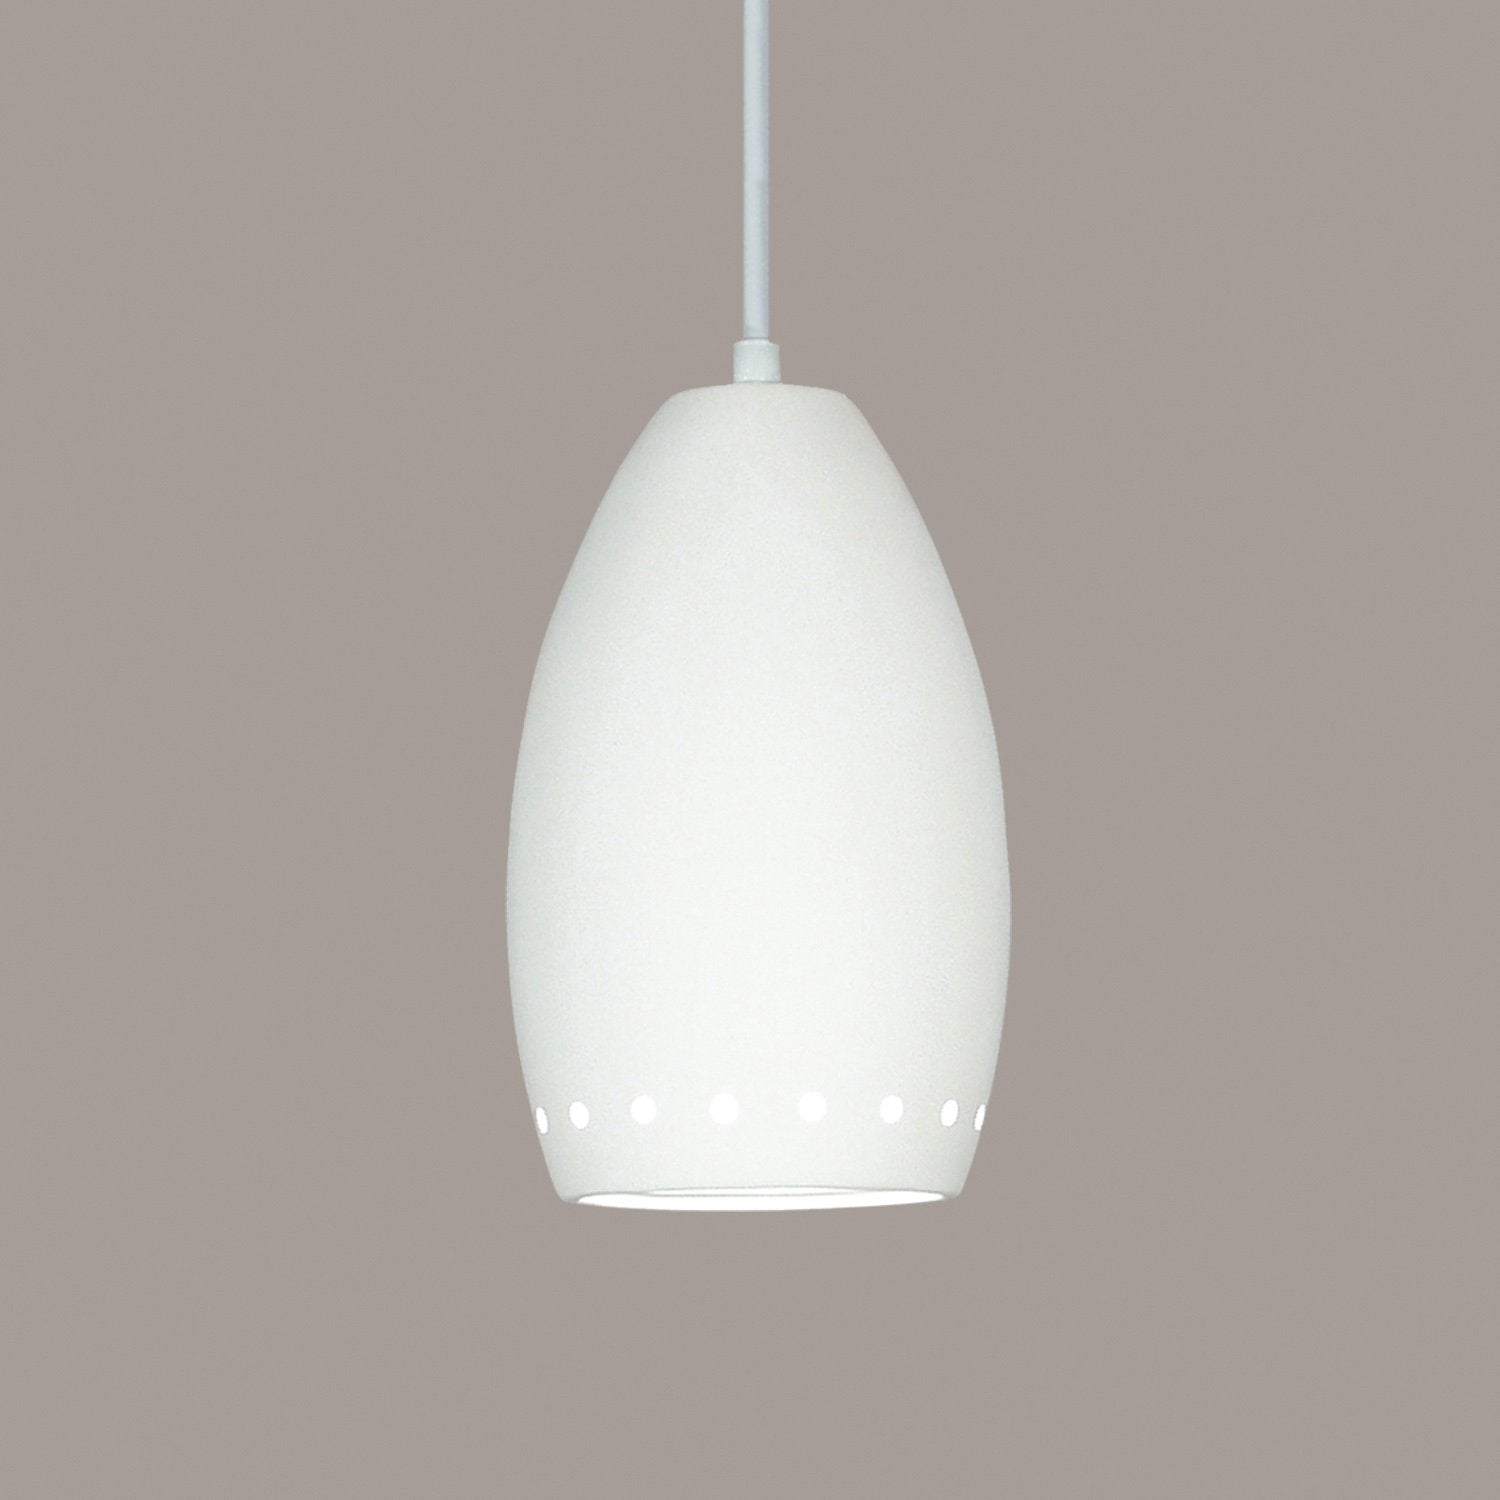 A19 P1503-A32-BCC Islands of Light Collection Grenada Cream Satin Finish Pendant